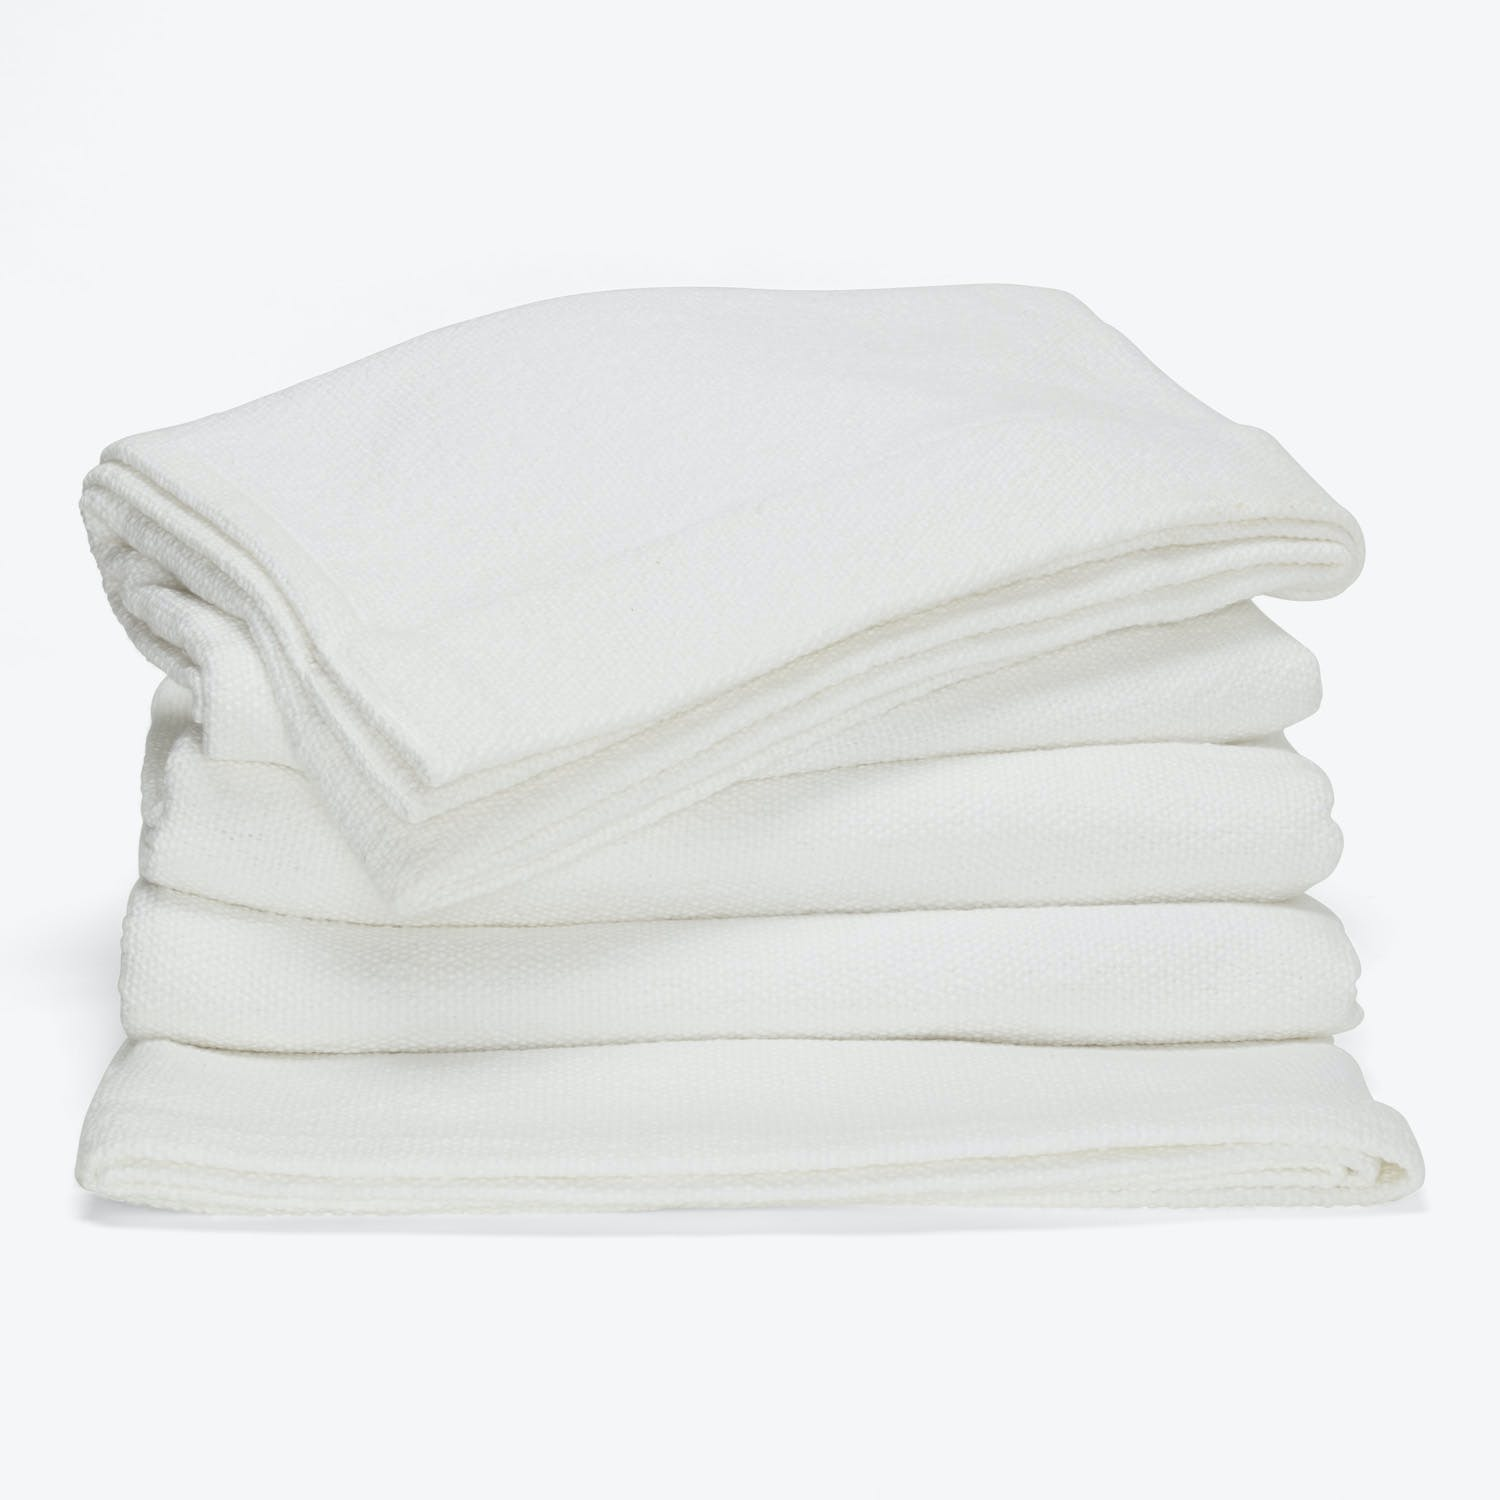 Product Image - Sefte Mila Woven Cotton Blanket King White